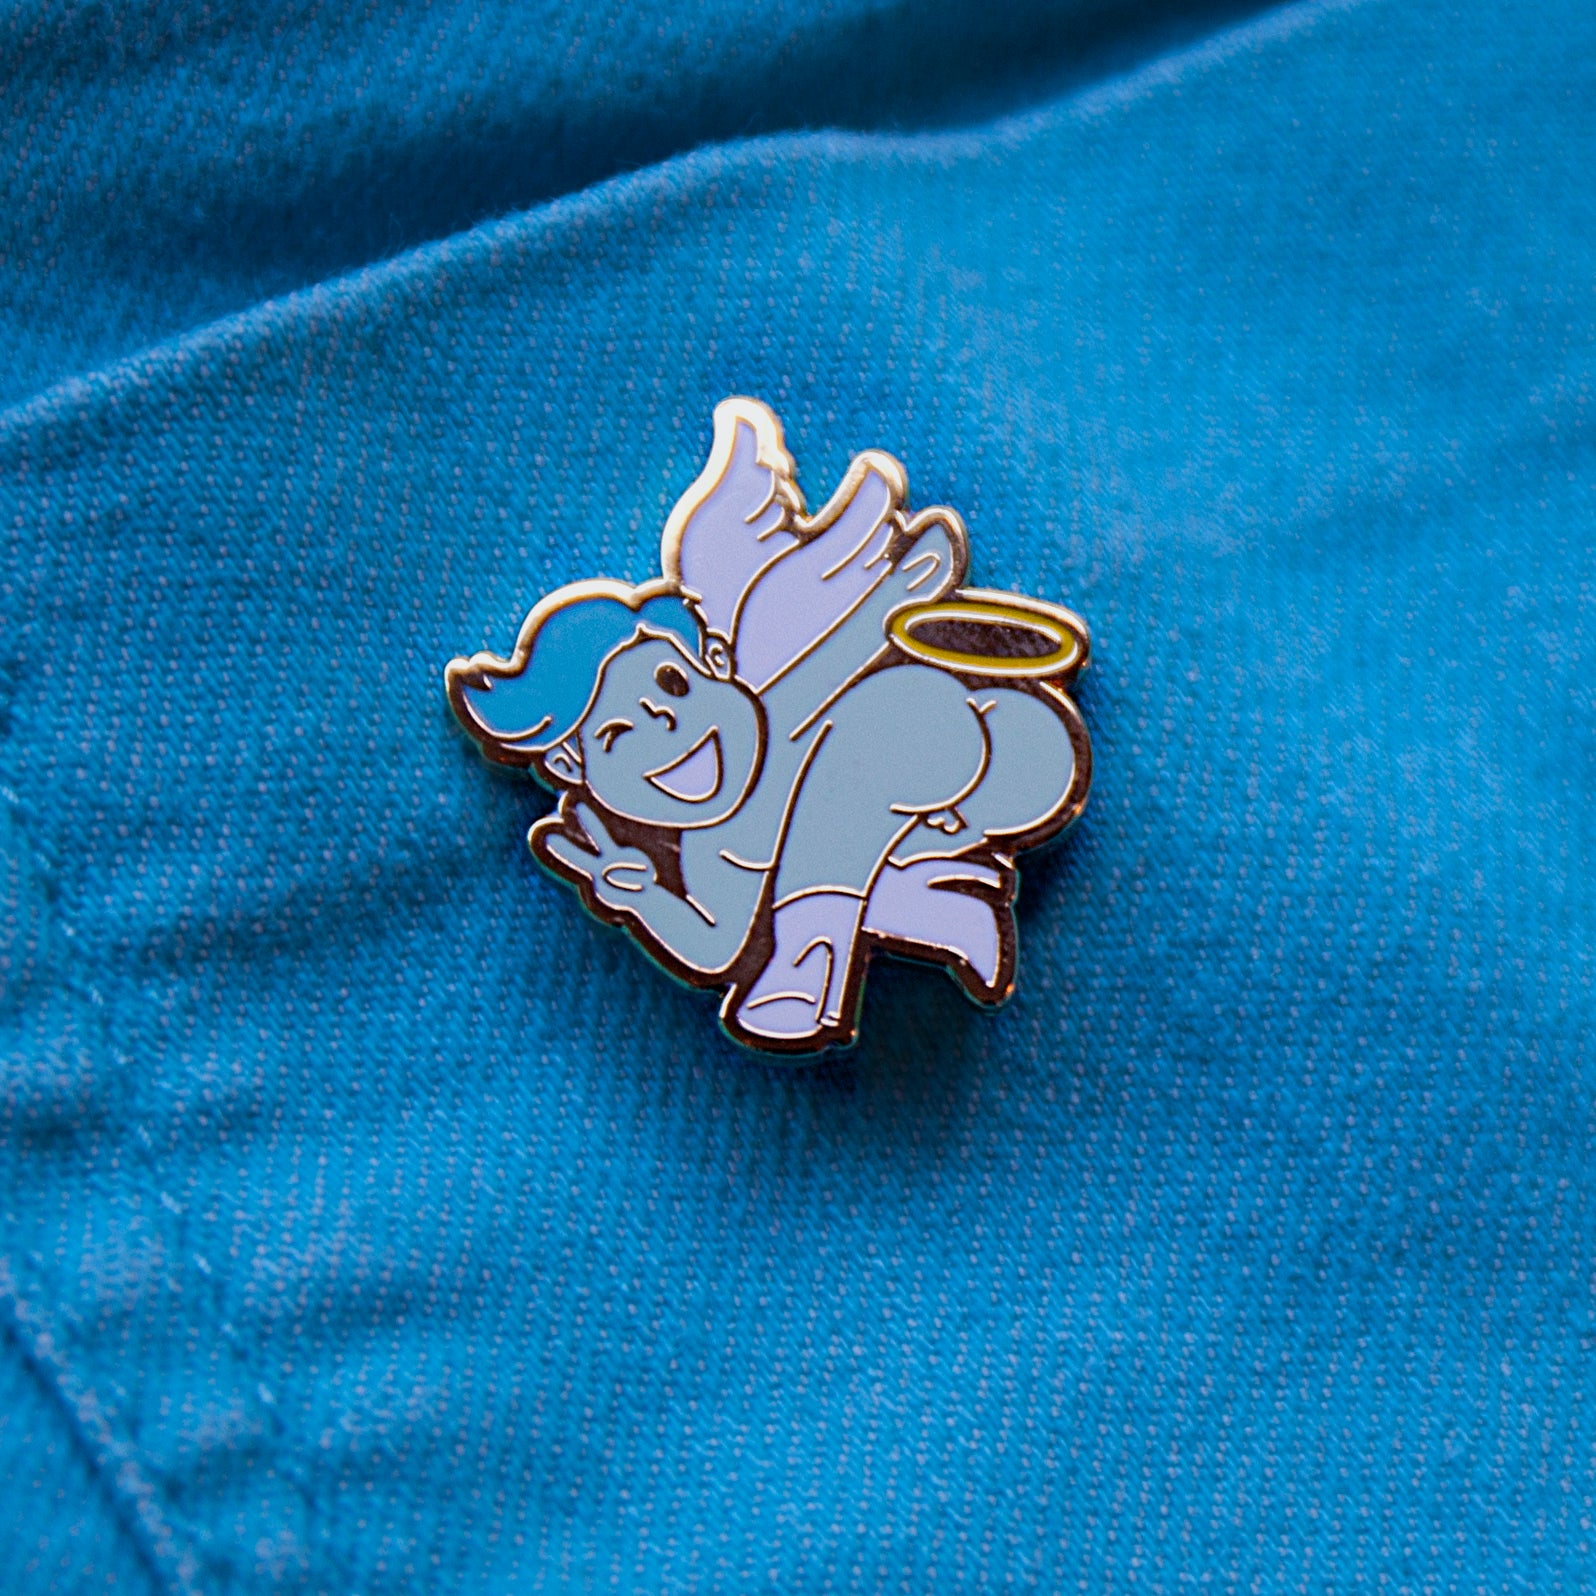 Angel Booty Pin - GAYPIN'